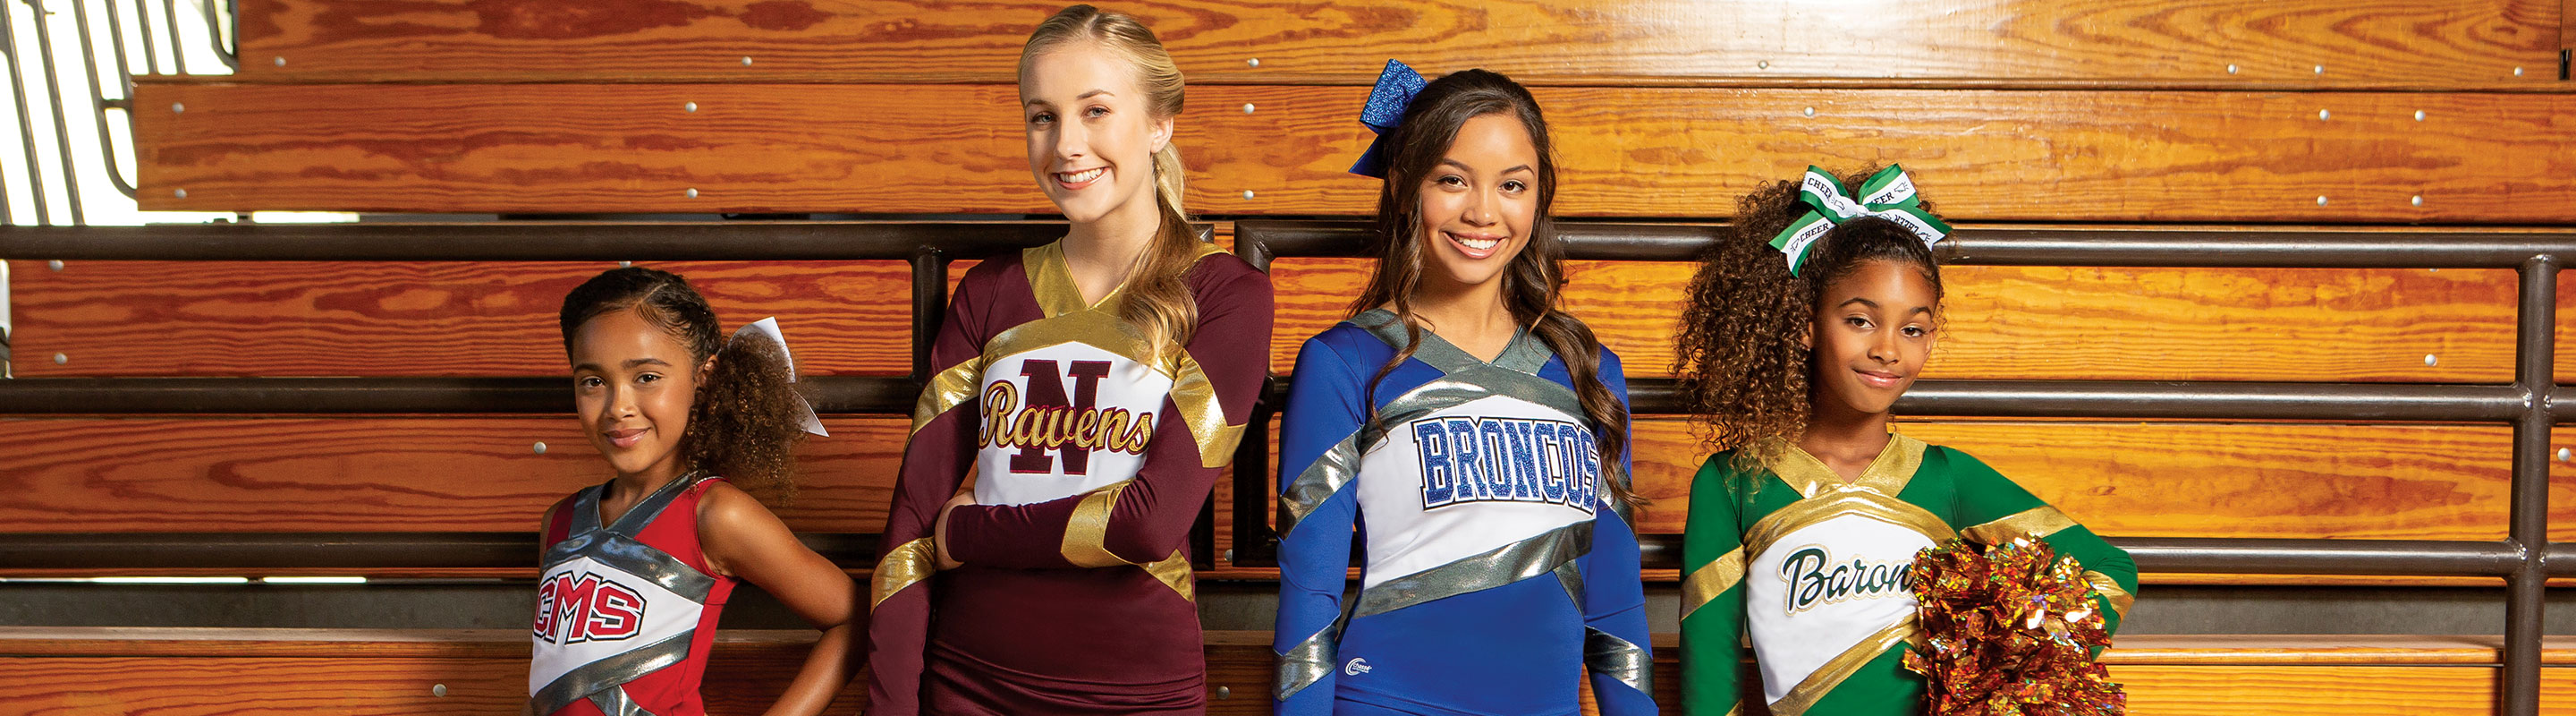 681d87b737c Cheer Uniforms  Find Top Cheerleading Uniforms for Less - Omni Cheer